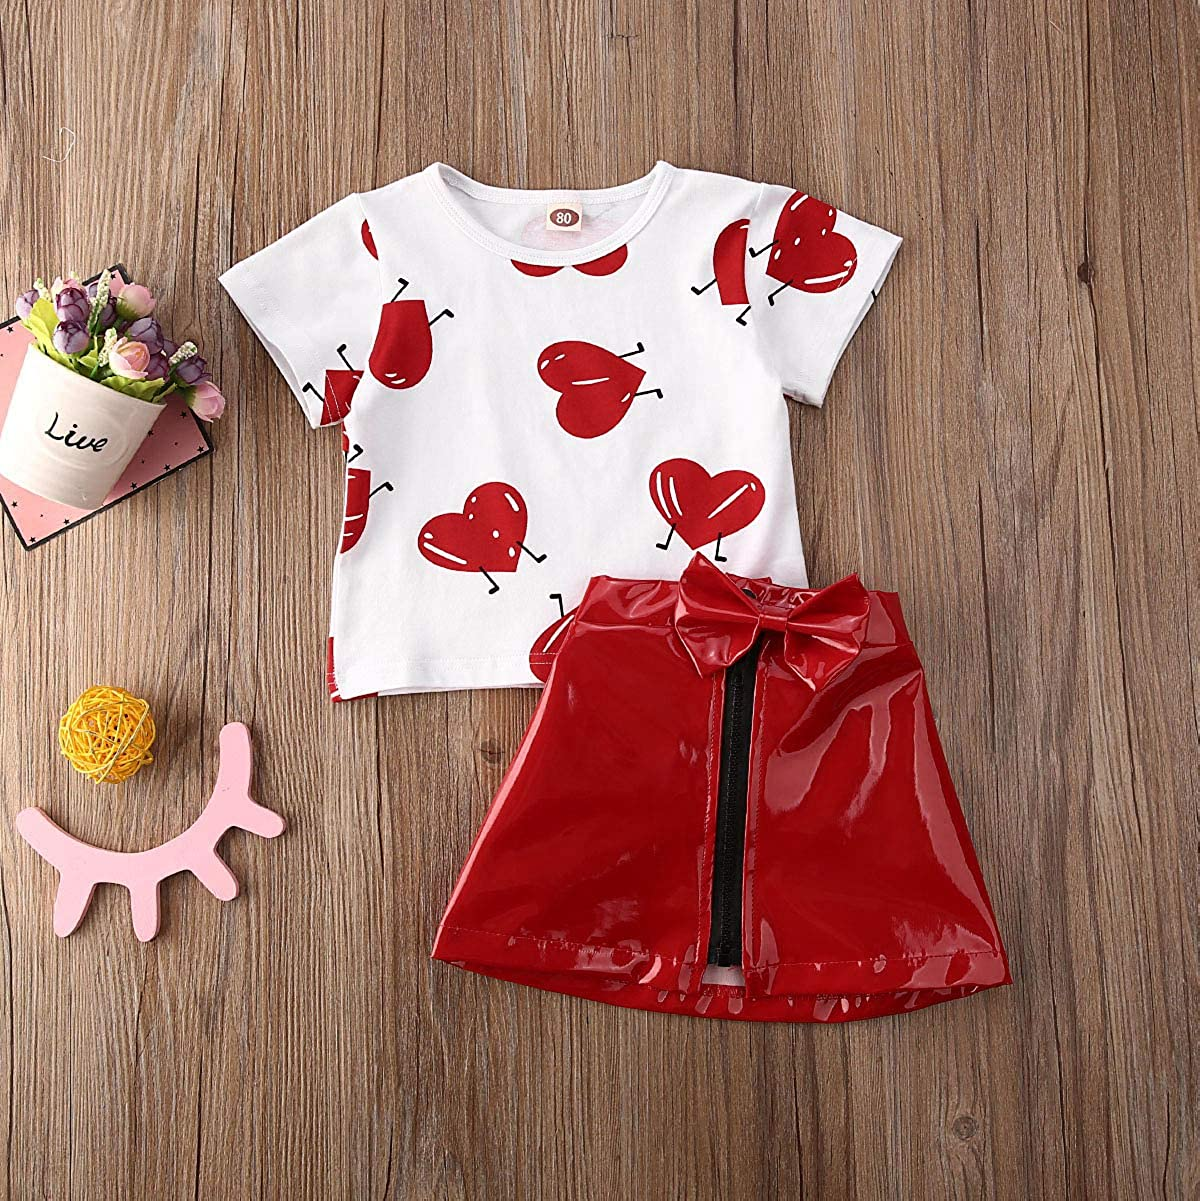 LZCYILANXIULSL Toddler Baby Girl Valentines Day Outfit Love Print T Shirts Top Leather Skirt Summer Clothes Sets